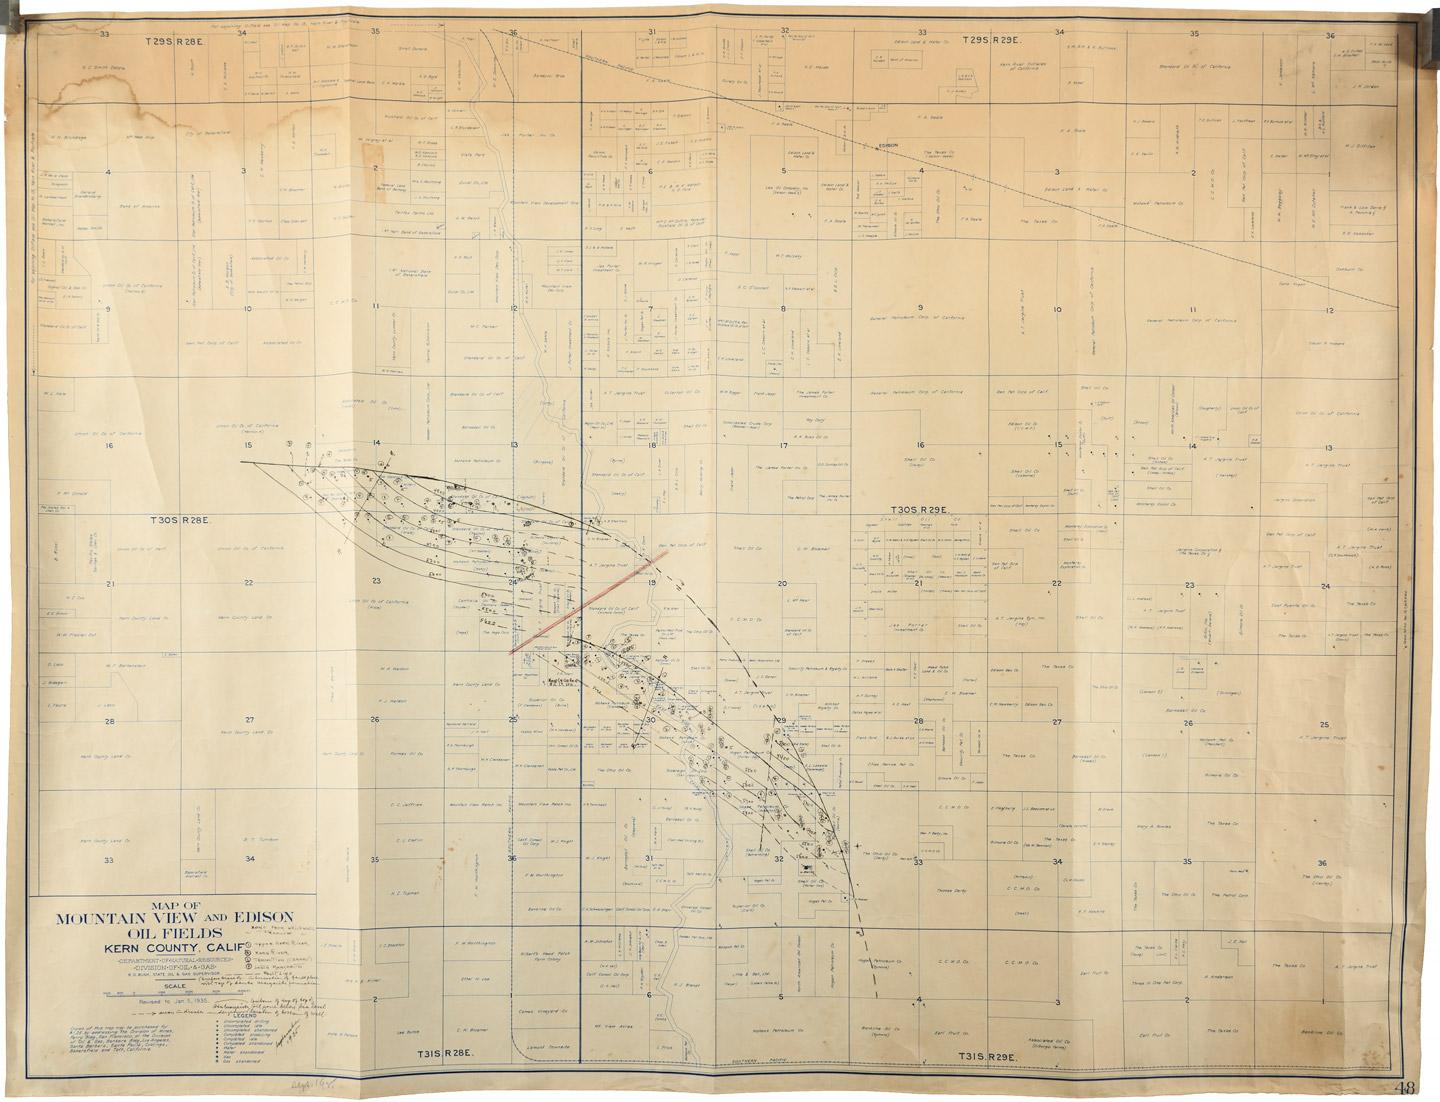 Map of Mountain View and Edison Oil Fields, Kern County, Calif ... Kern County Map Of Mountains on map of tehachapi mountains, map of san gabriel mountains, map of sierra madre mountains, map of los gatos mountains, map of southern california mountains,